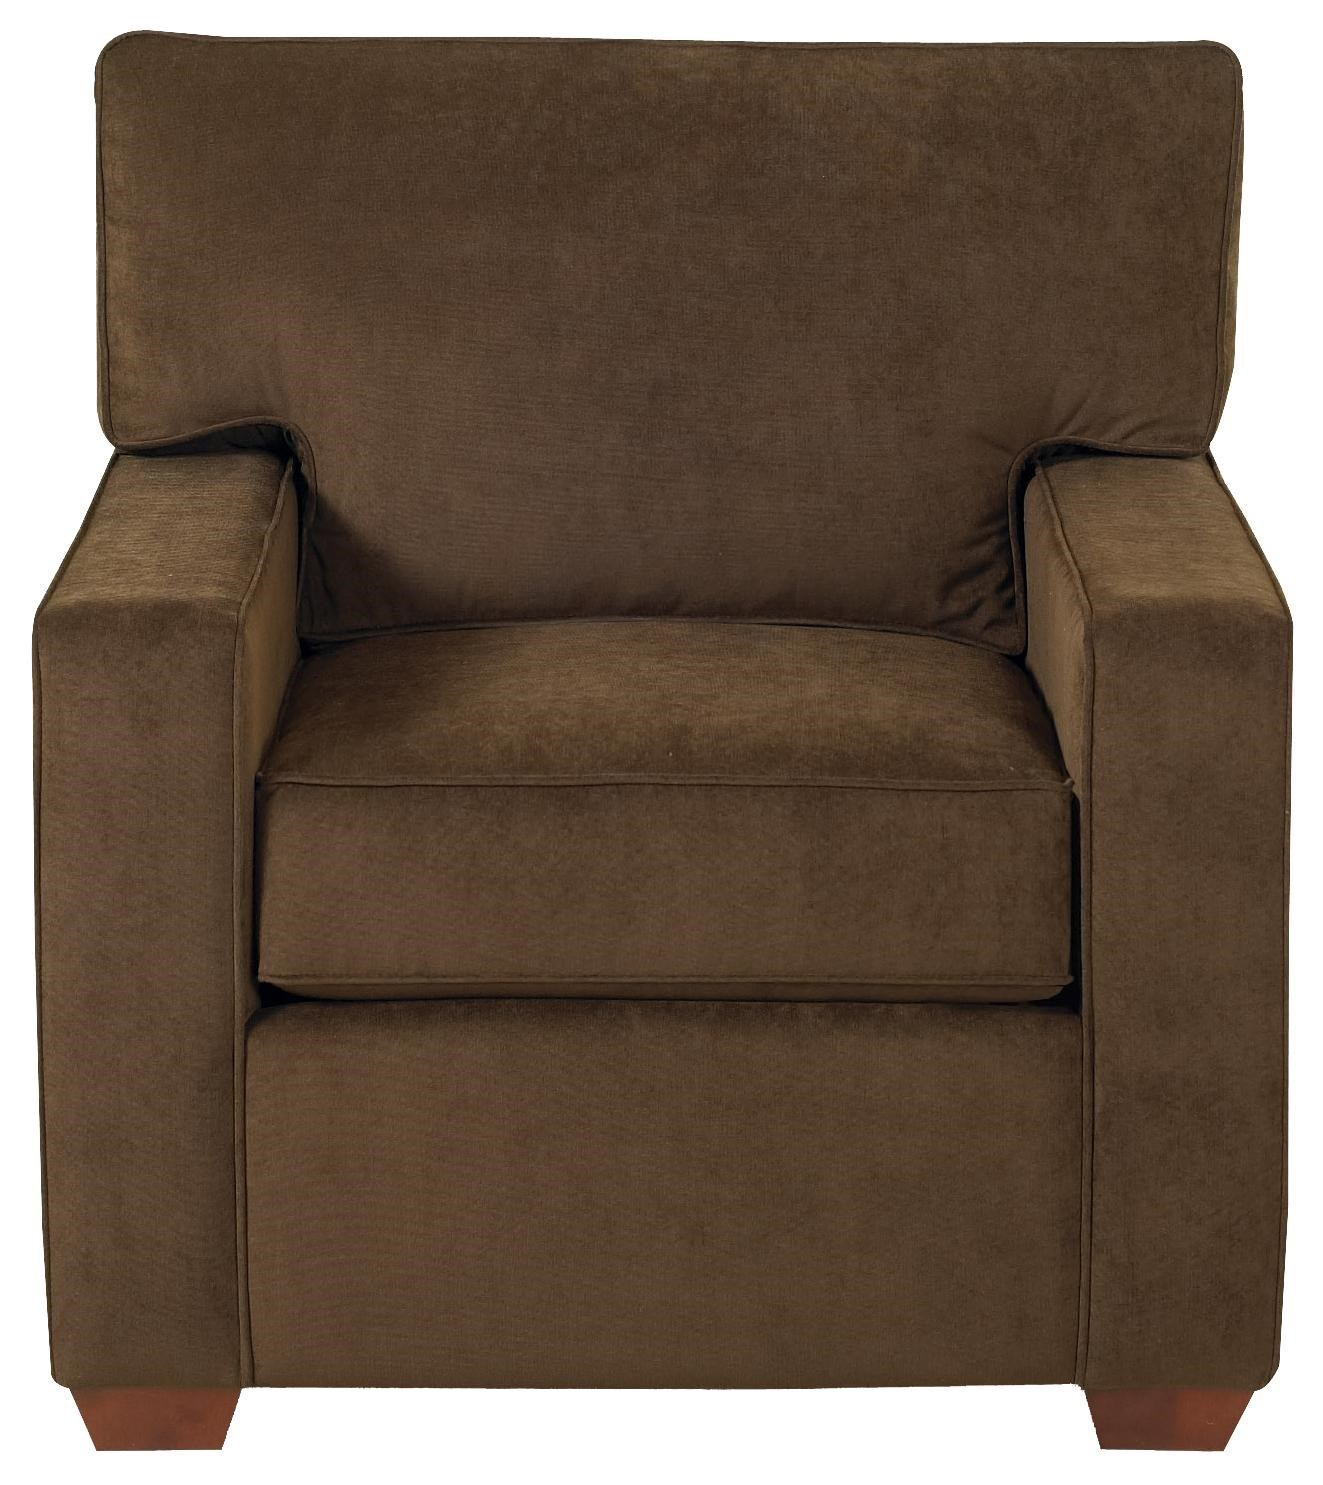 Klaussner Selection K50000 C Modern Living Room Chair | Pilgrim Furniture  City | Upholstered Chairs